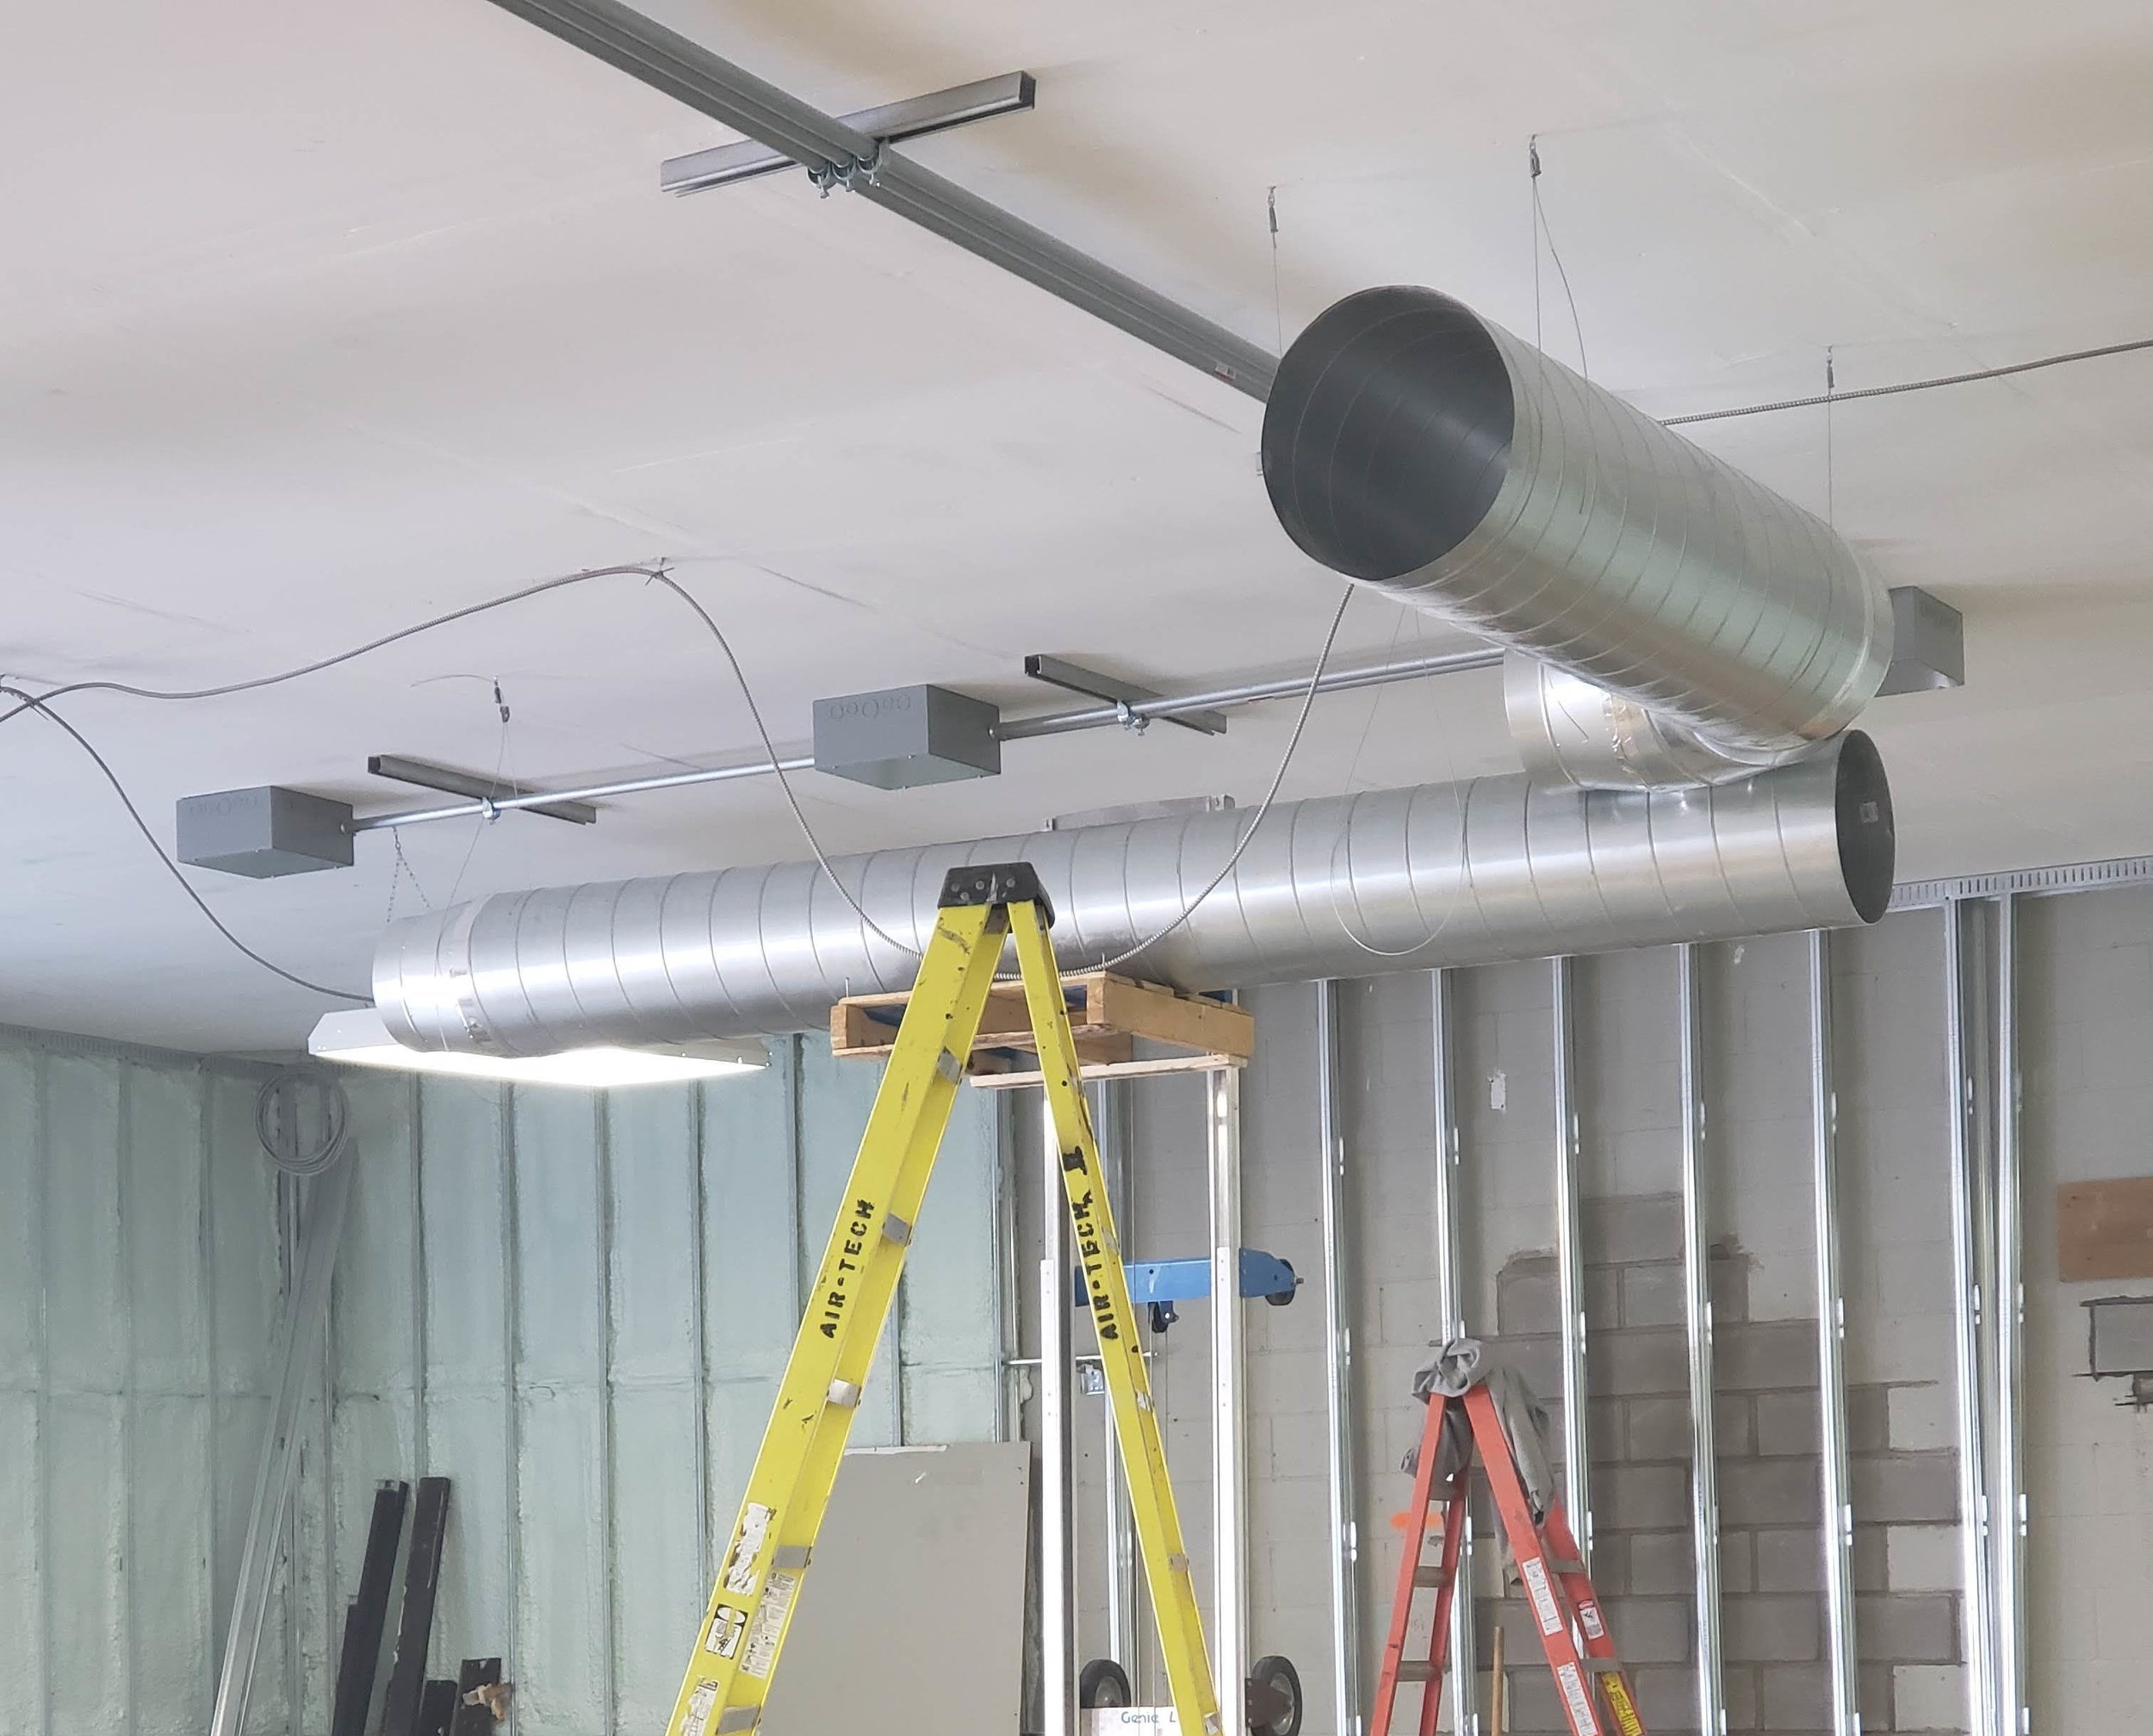 New duct work going in to keep things nice and toasty!